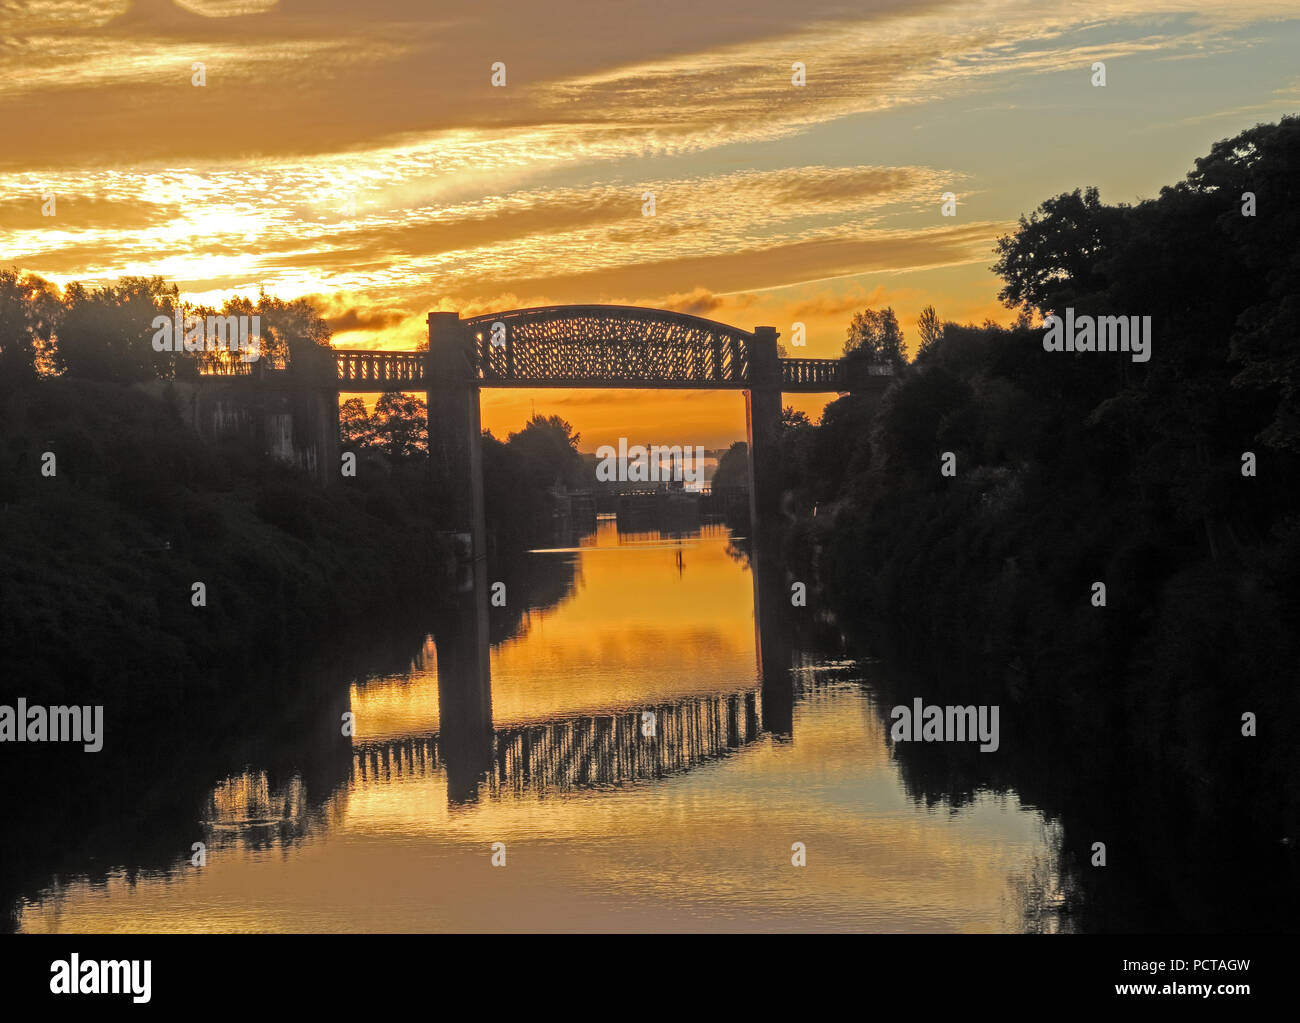 Sunrise at Latchford Locks, MSCC, Warrington, Cheshire, North West England, UK - Stock Image